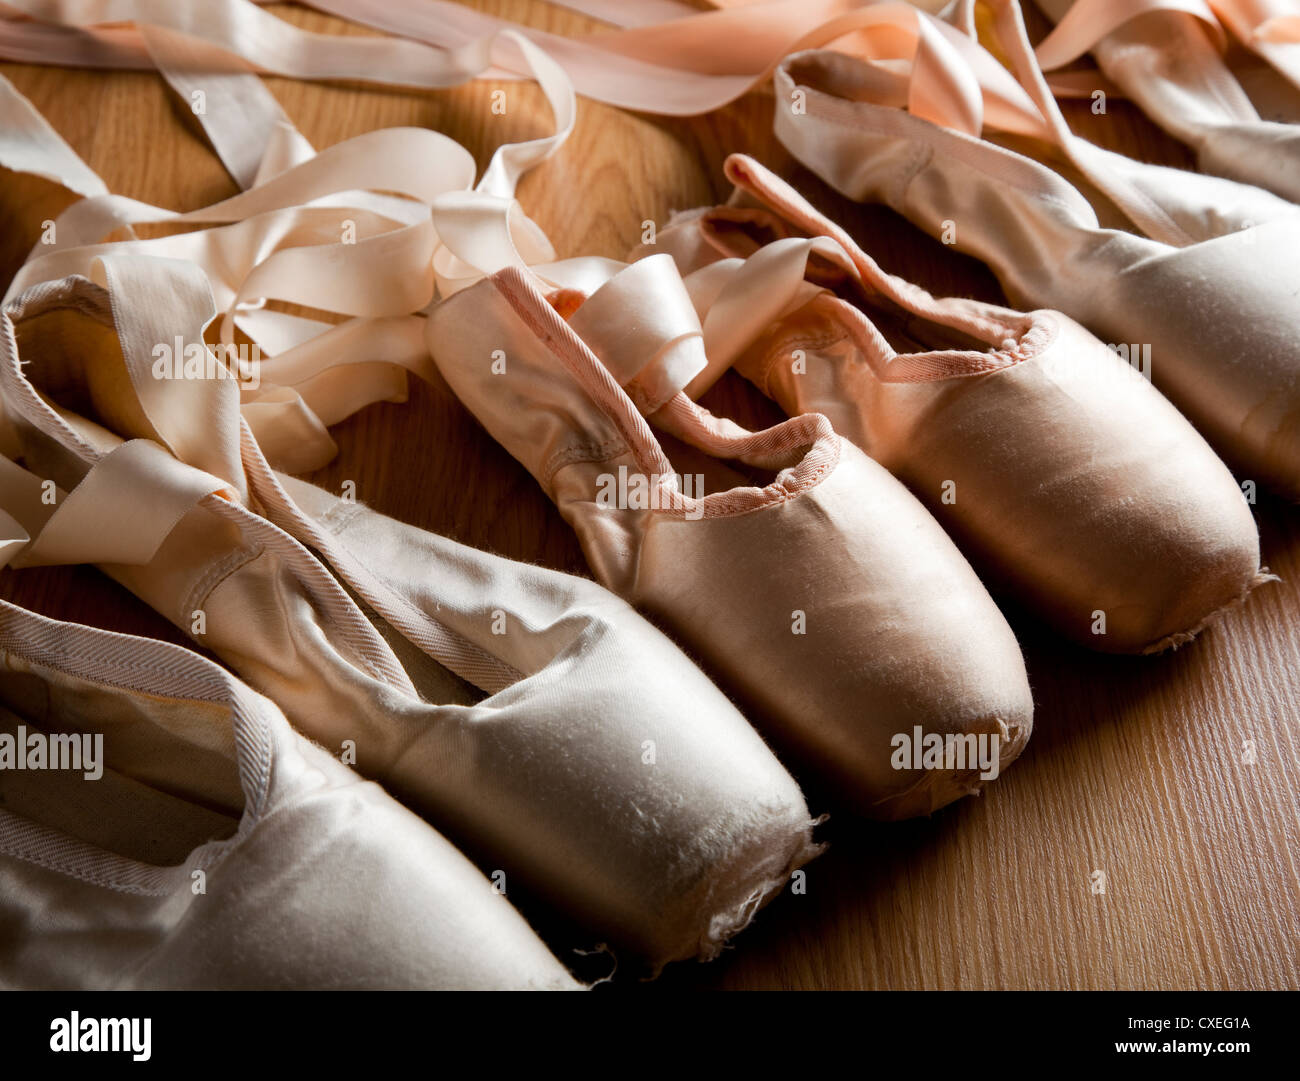 A group or background of used ballet pointe shoes or slippers on a wooden floor - Stock Image